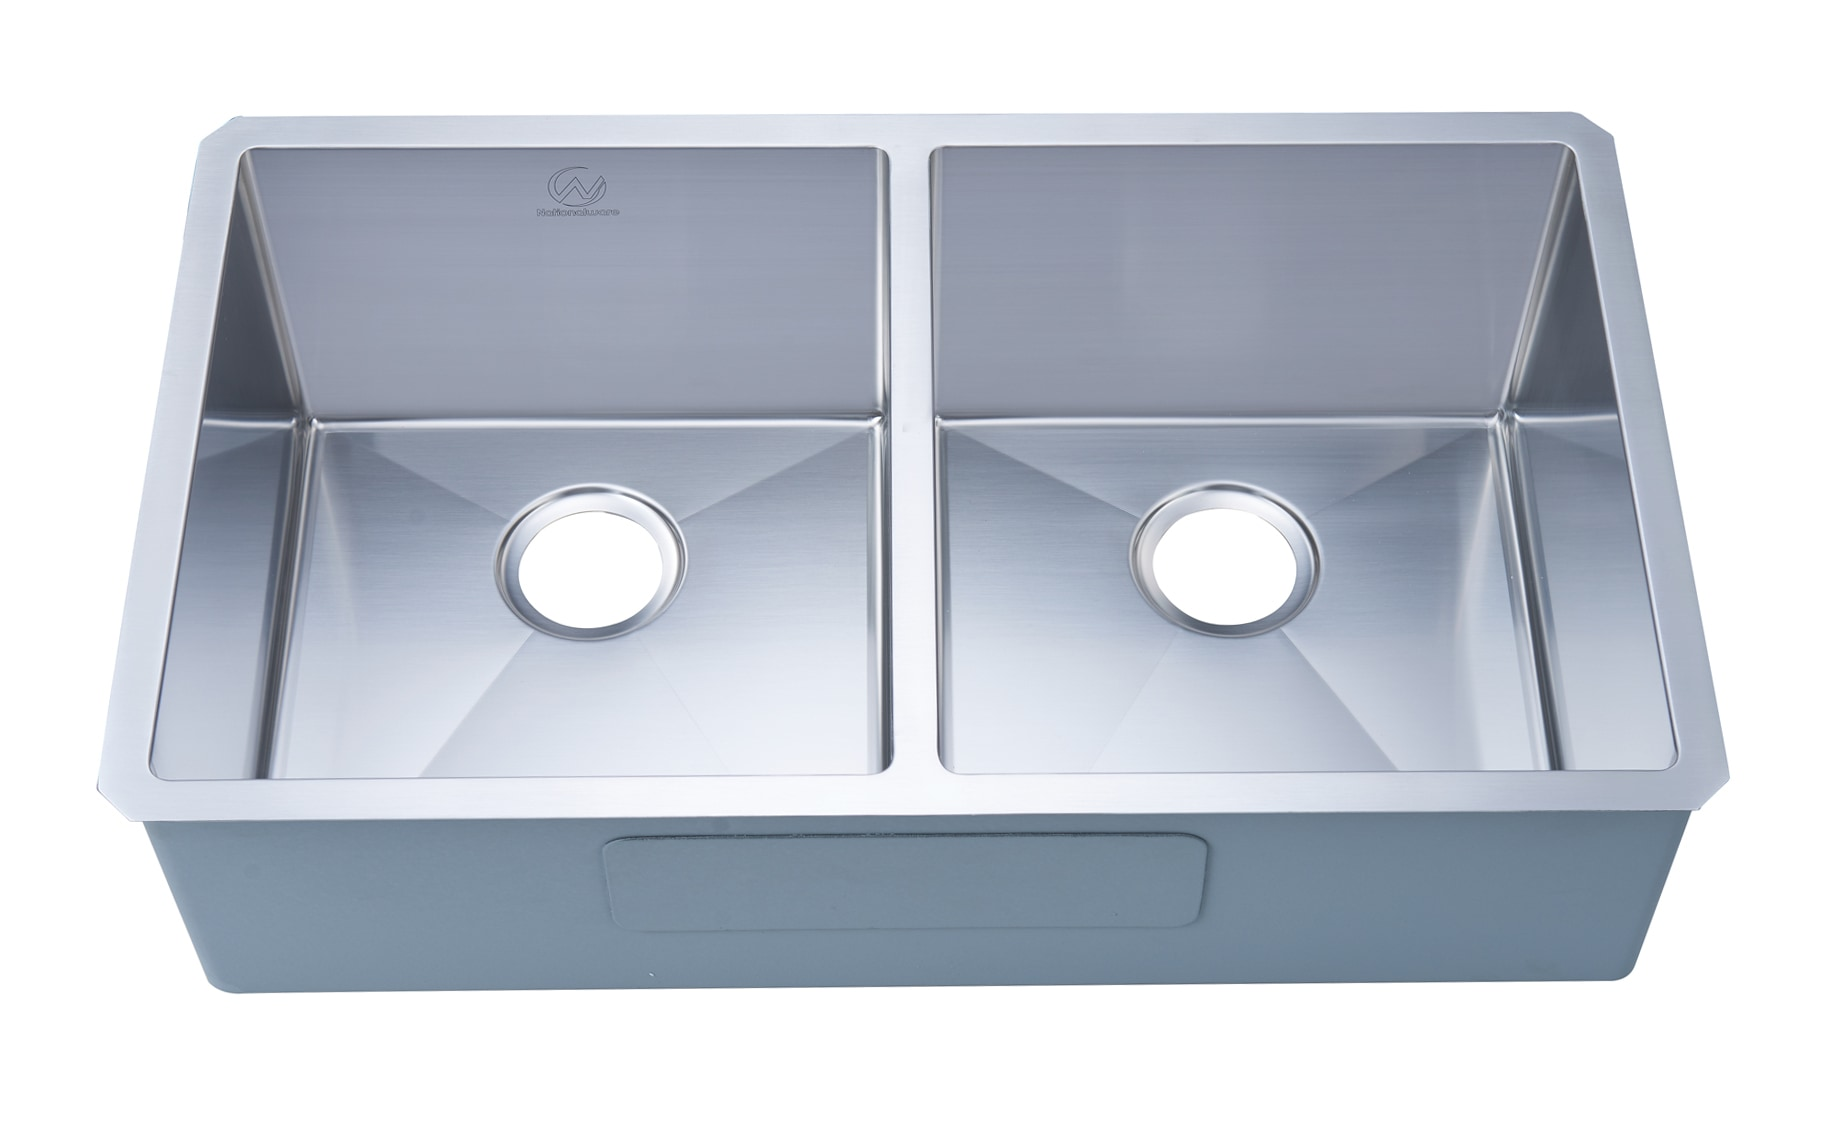 Nationalwares Undermount Stainless Steel 33 In Double Bowl Kitchen